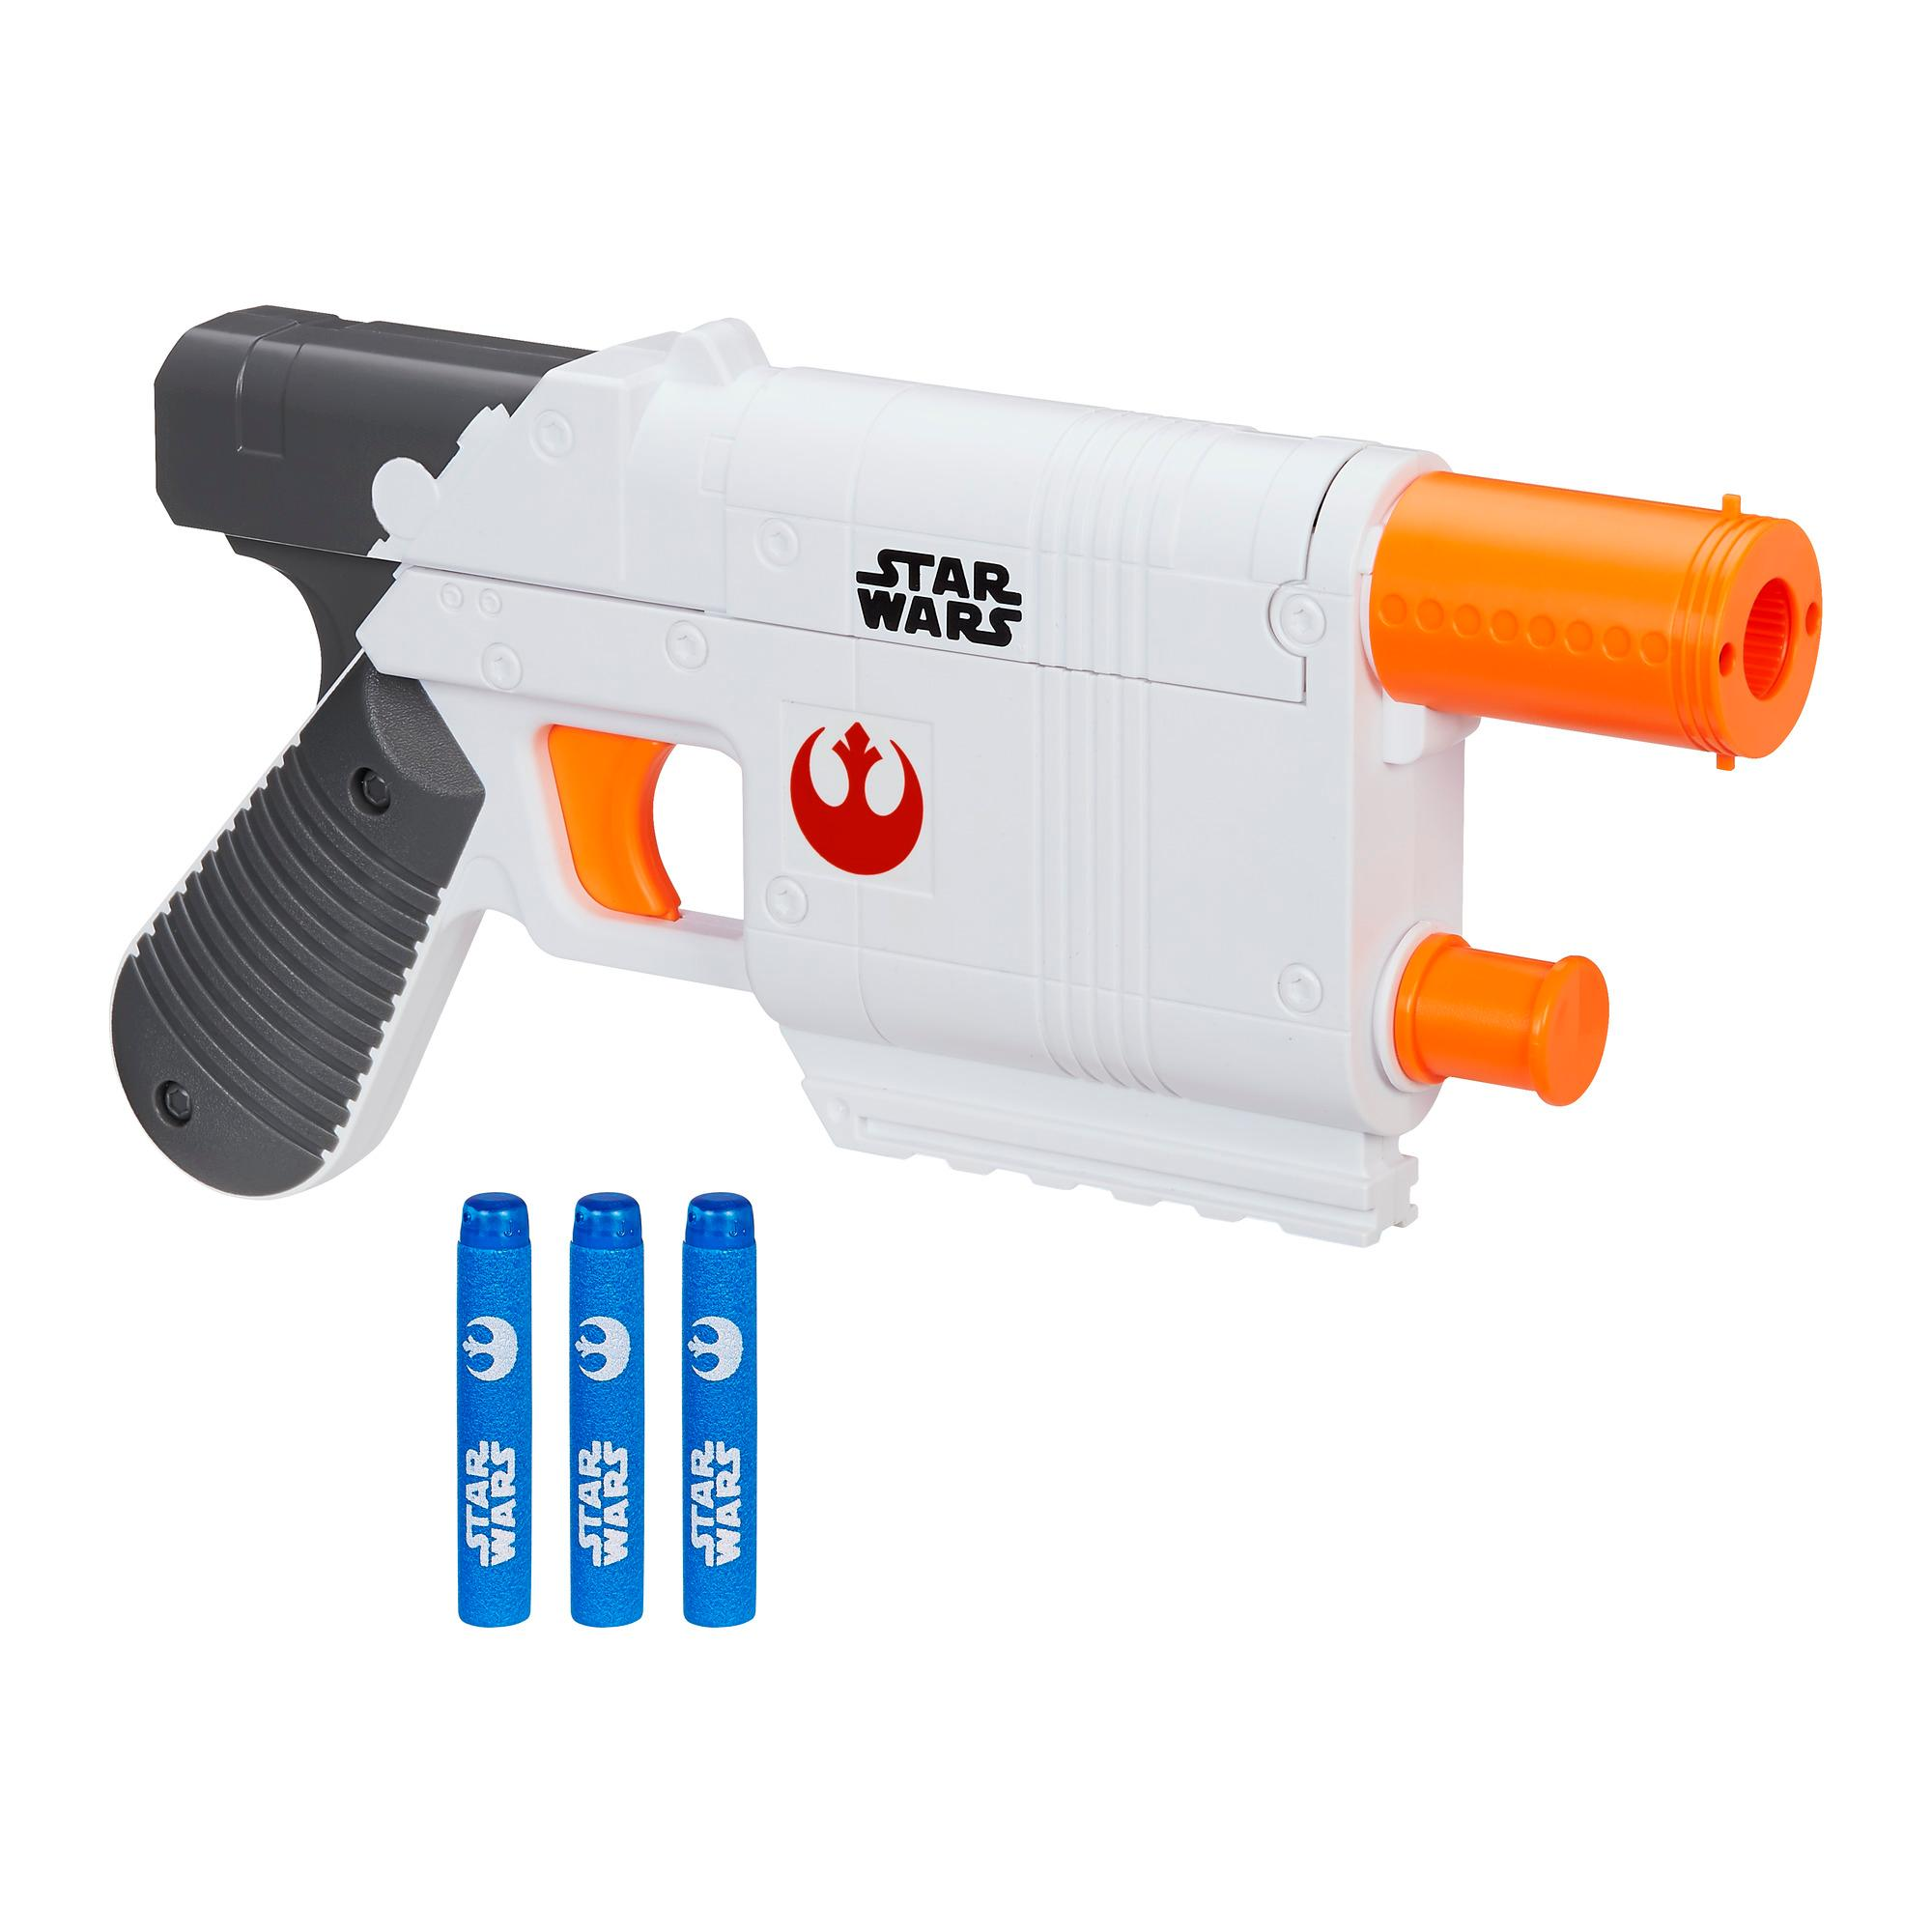 Star Wars Nerf Rey (Island Journey) Blaster